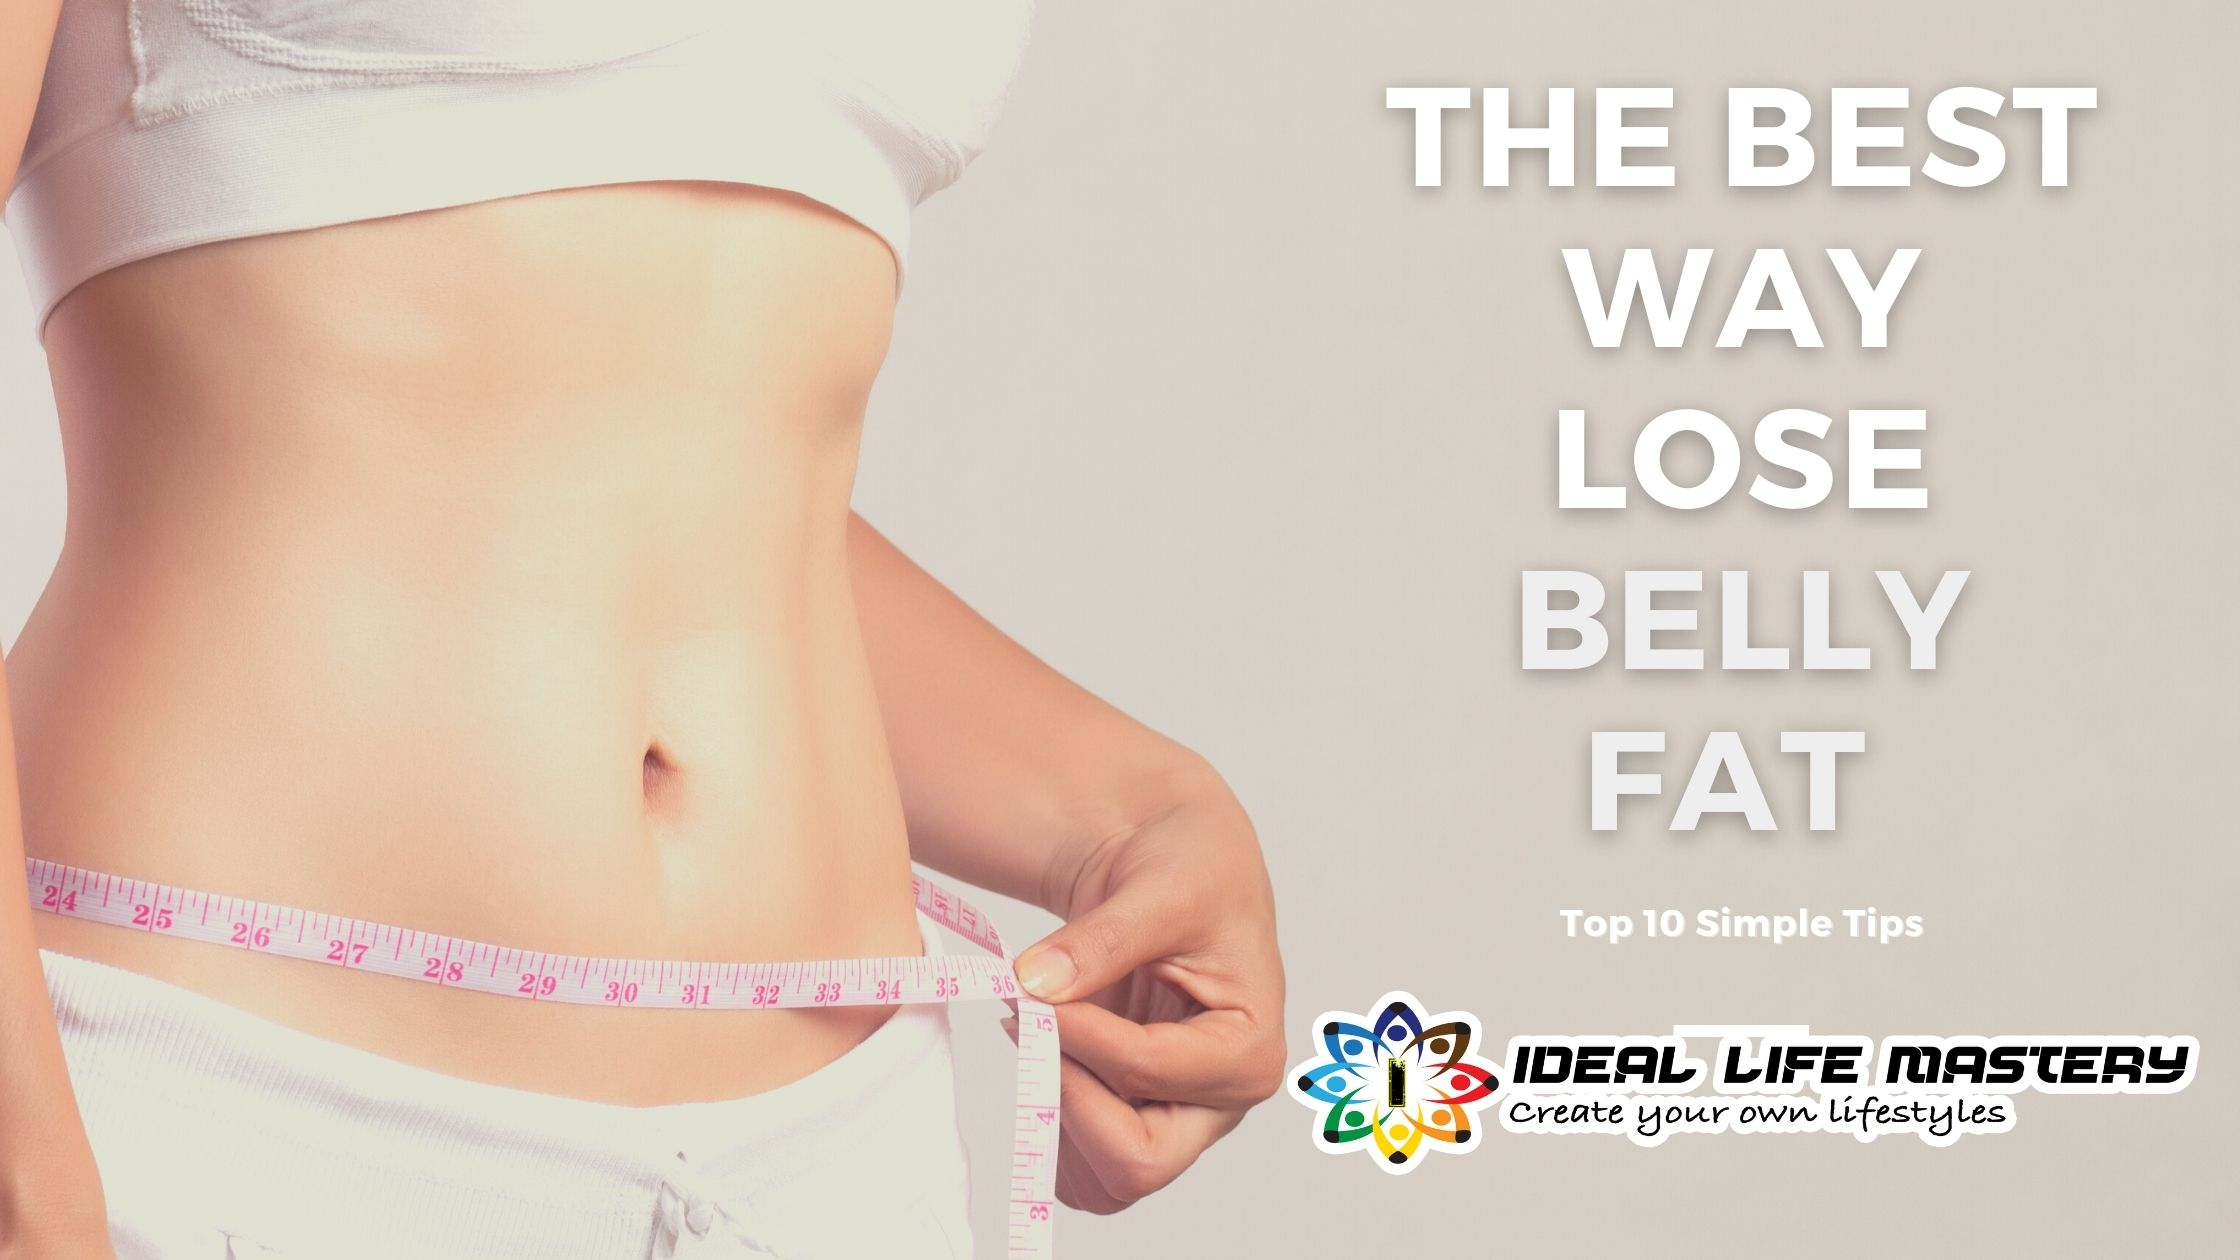 The Best Way Lose Belly Fat